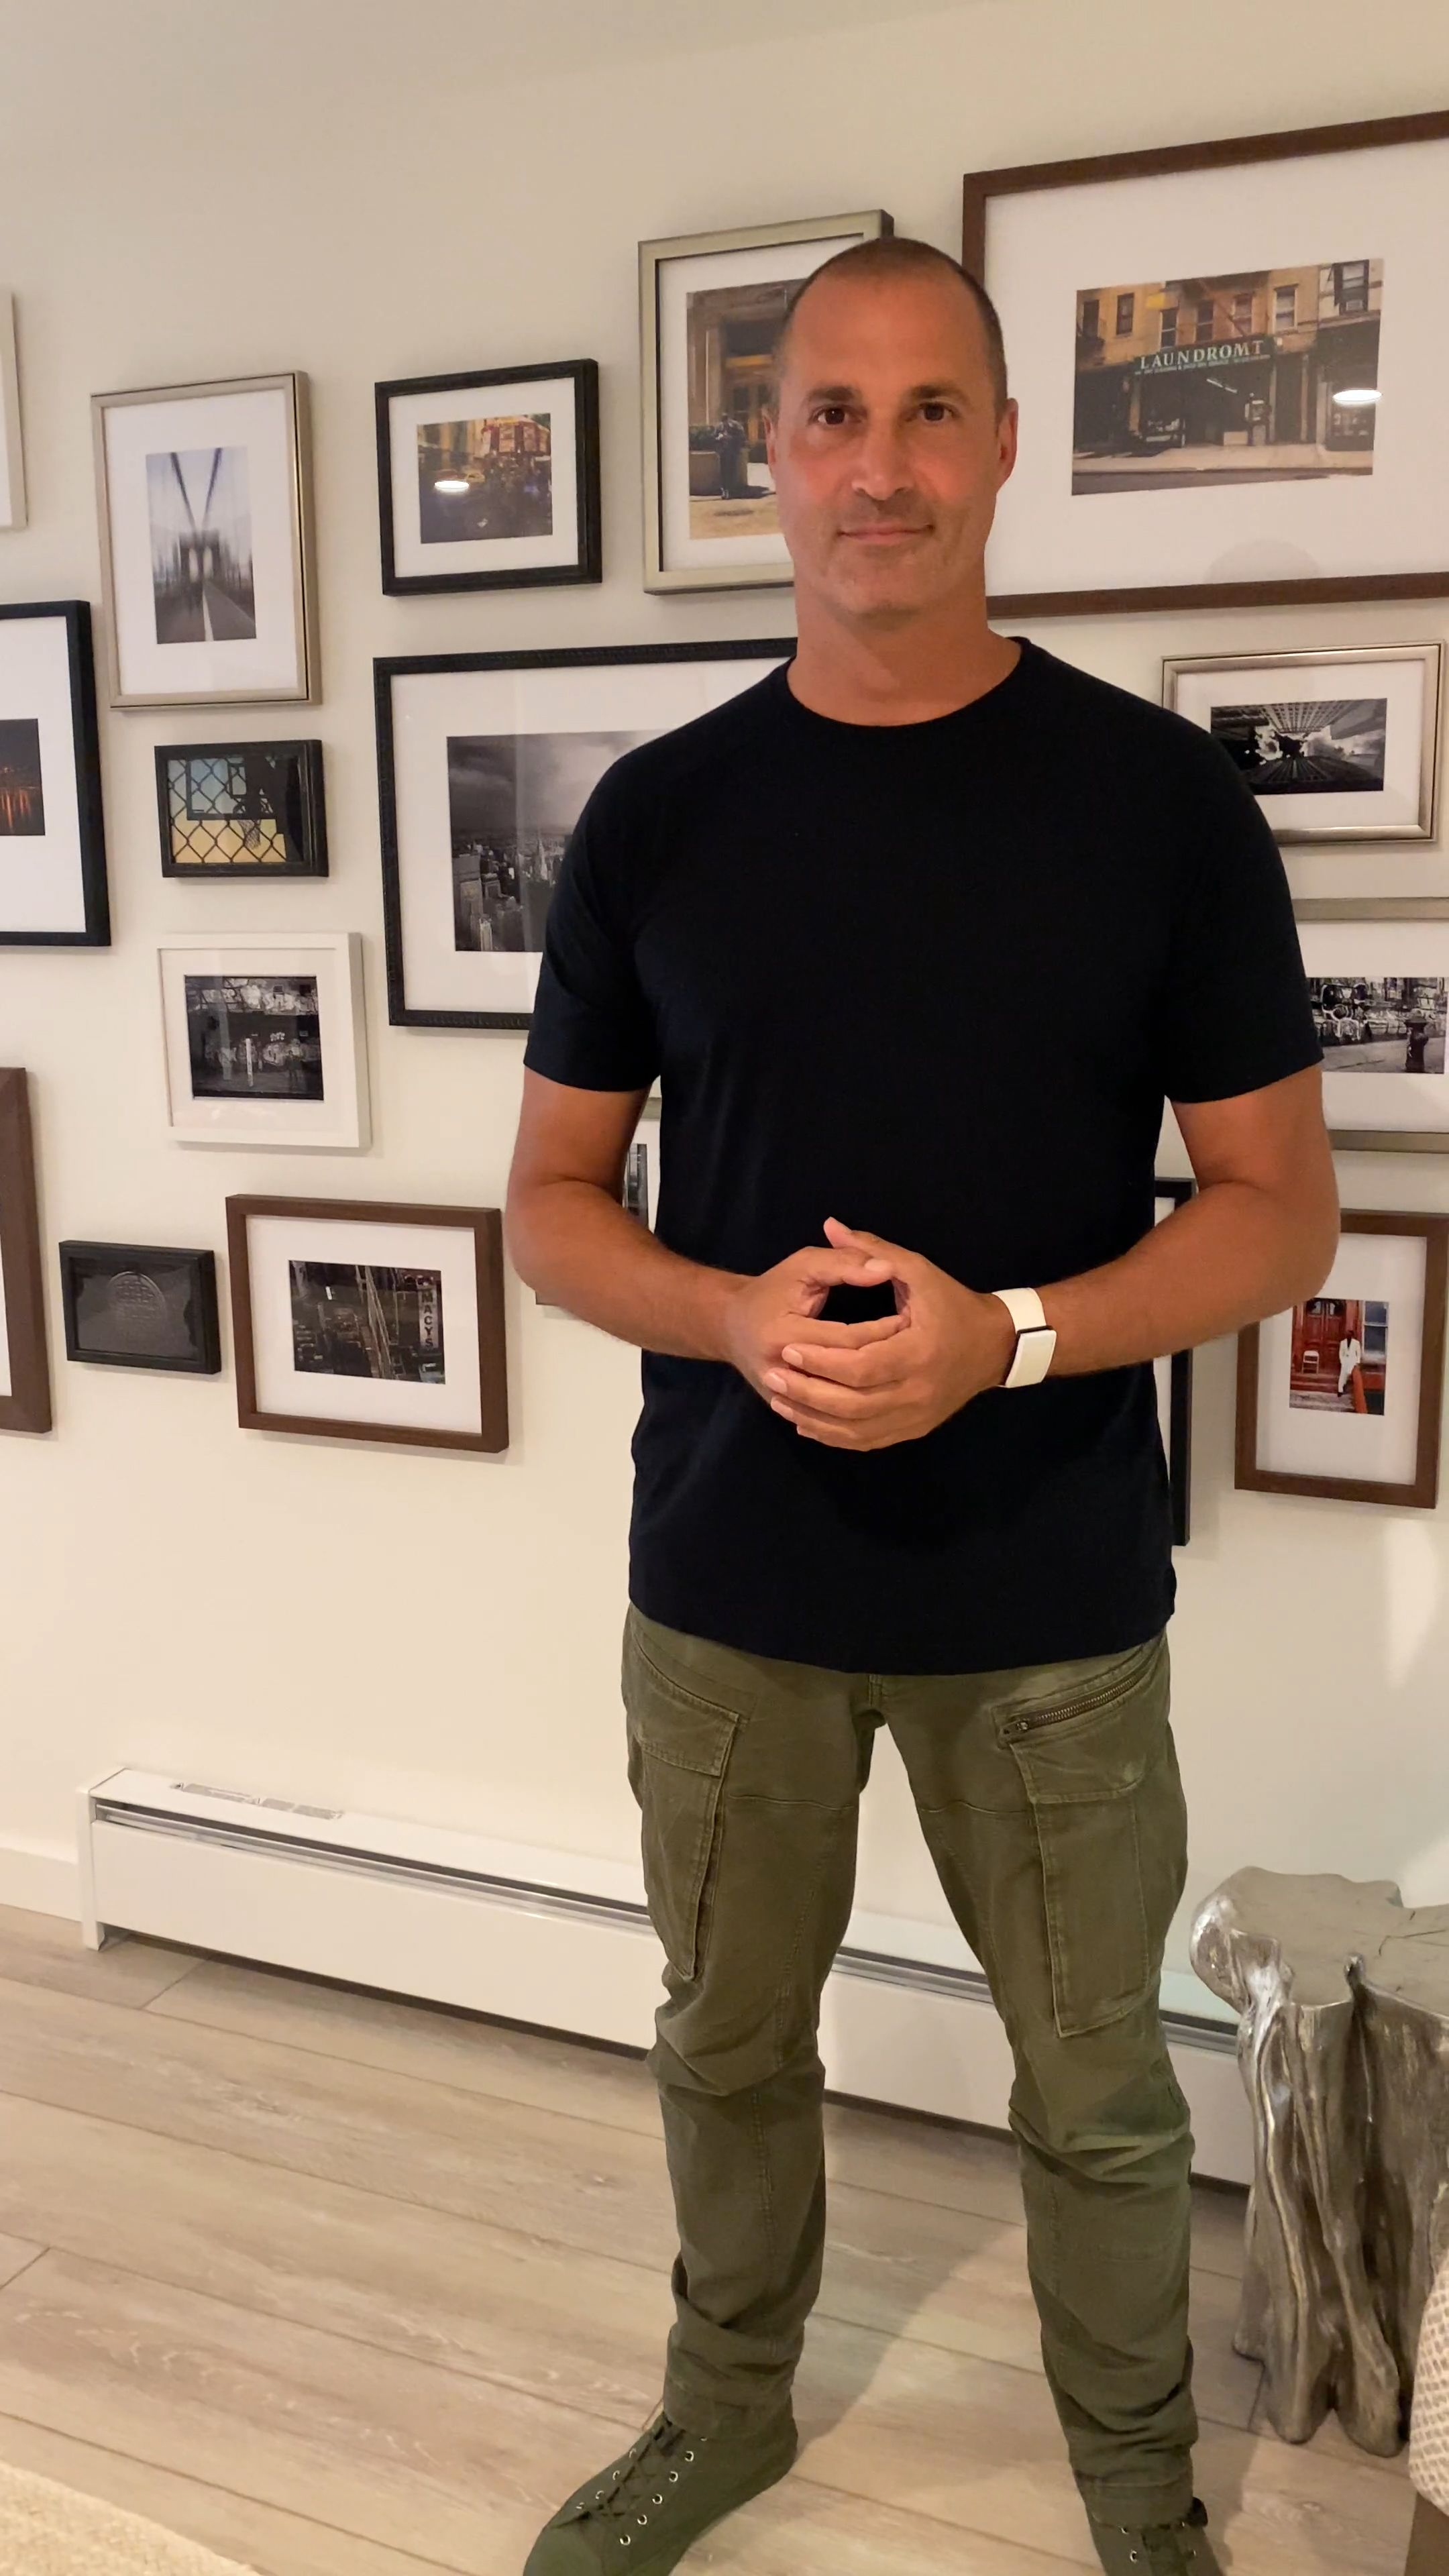 Nigel Barker in front of gallery wall